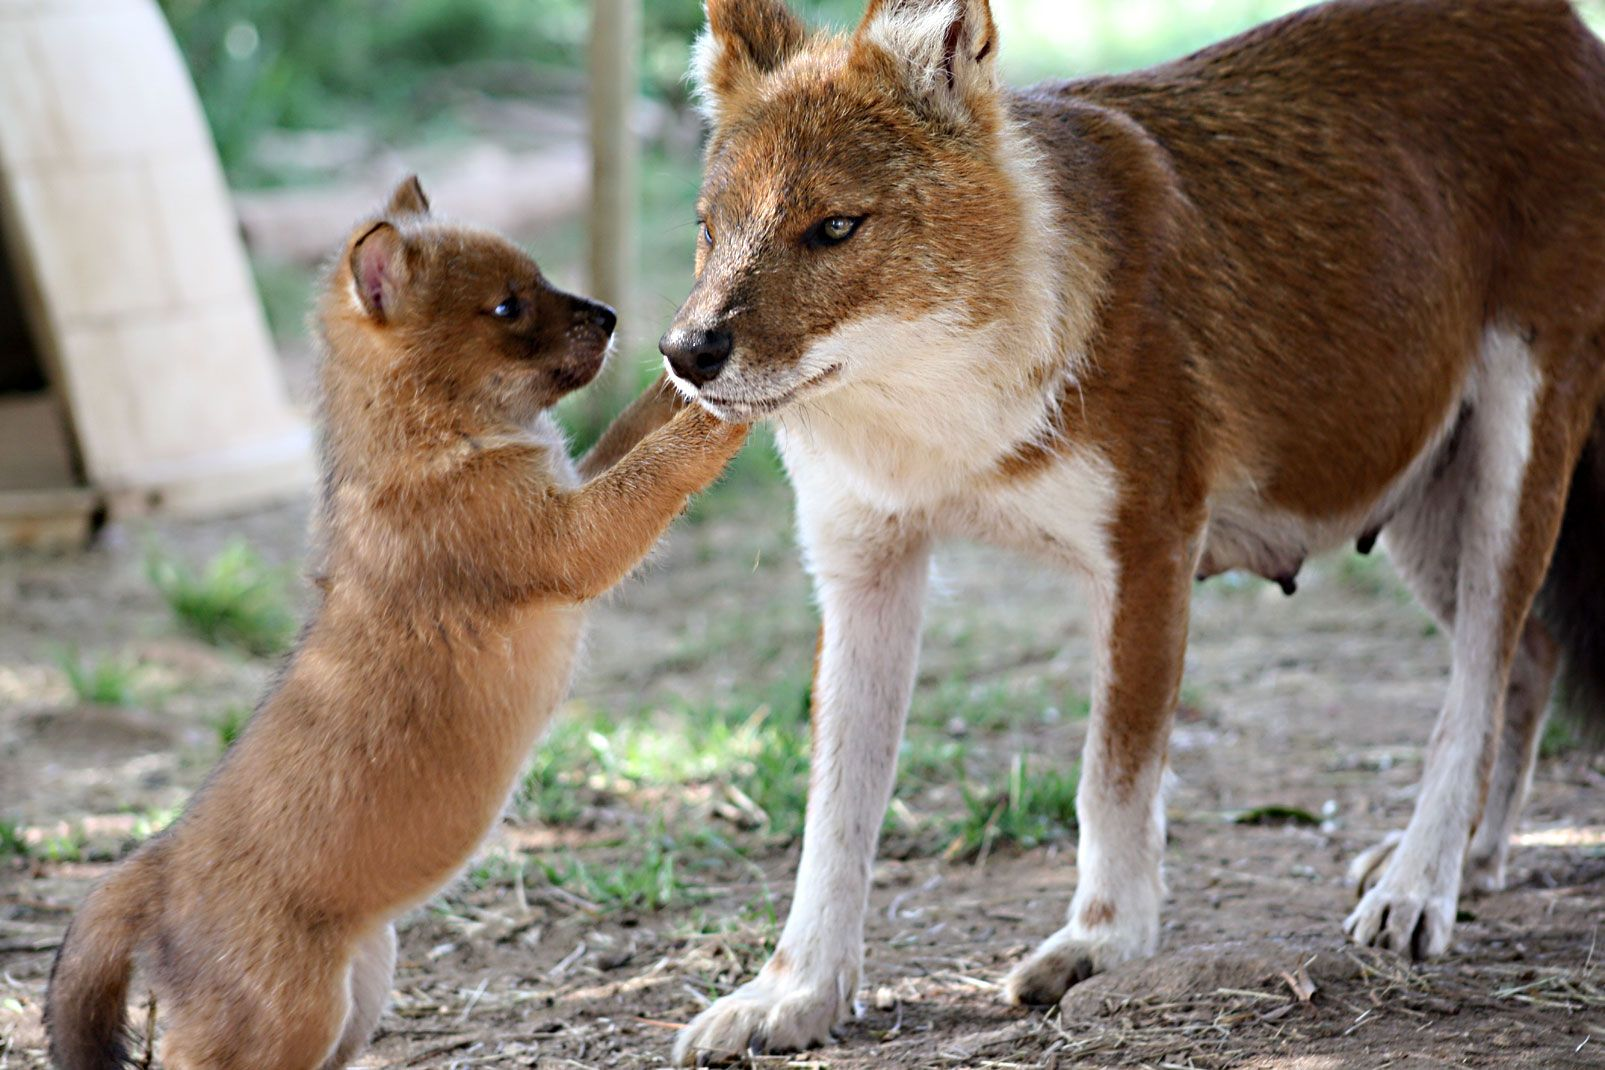 Dhole The dhole can also be called the whistling hunter because